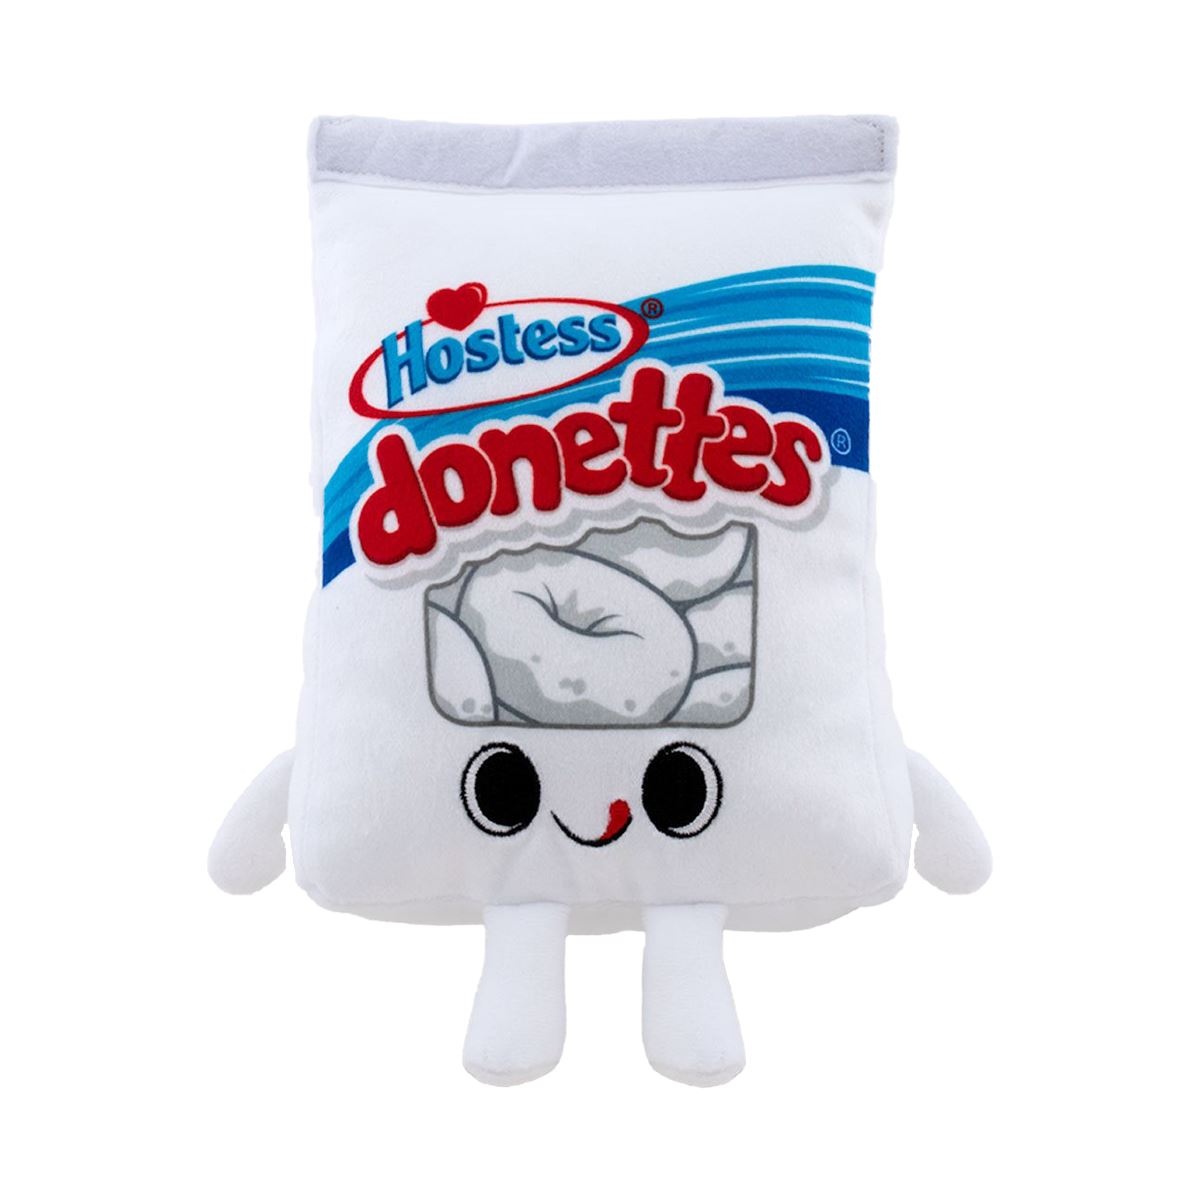 Donettes Funko POP! Plush Hostess Ad Icons [PRE-ORDER] Plush Funko